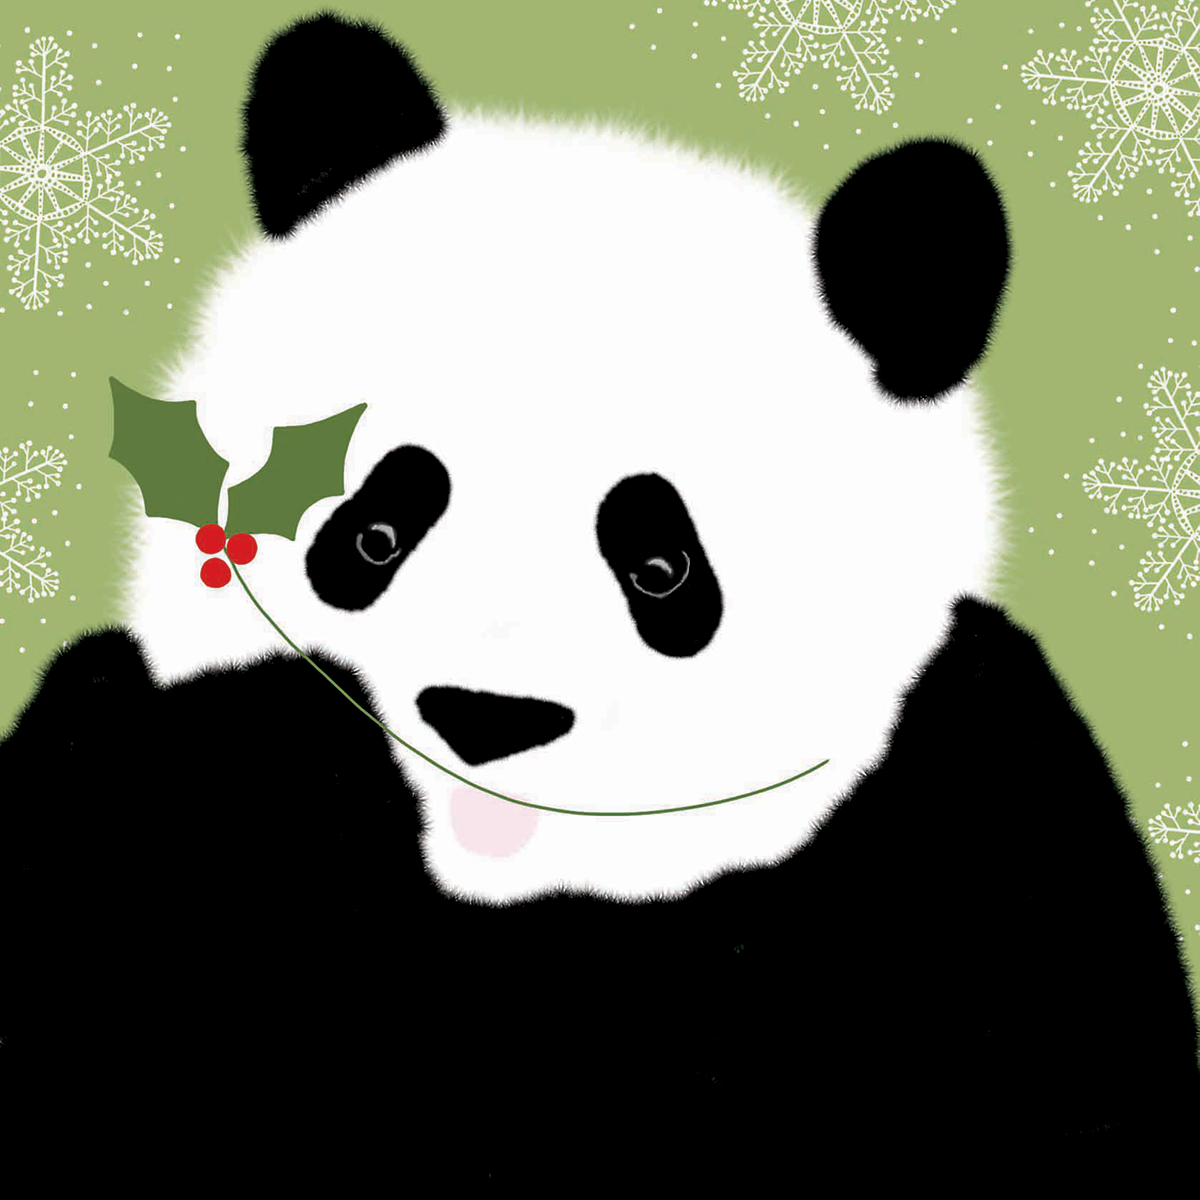 Pack of 10 140mm x 140mm WWF Pucker Up Christmas cards with ...